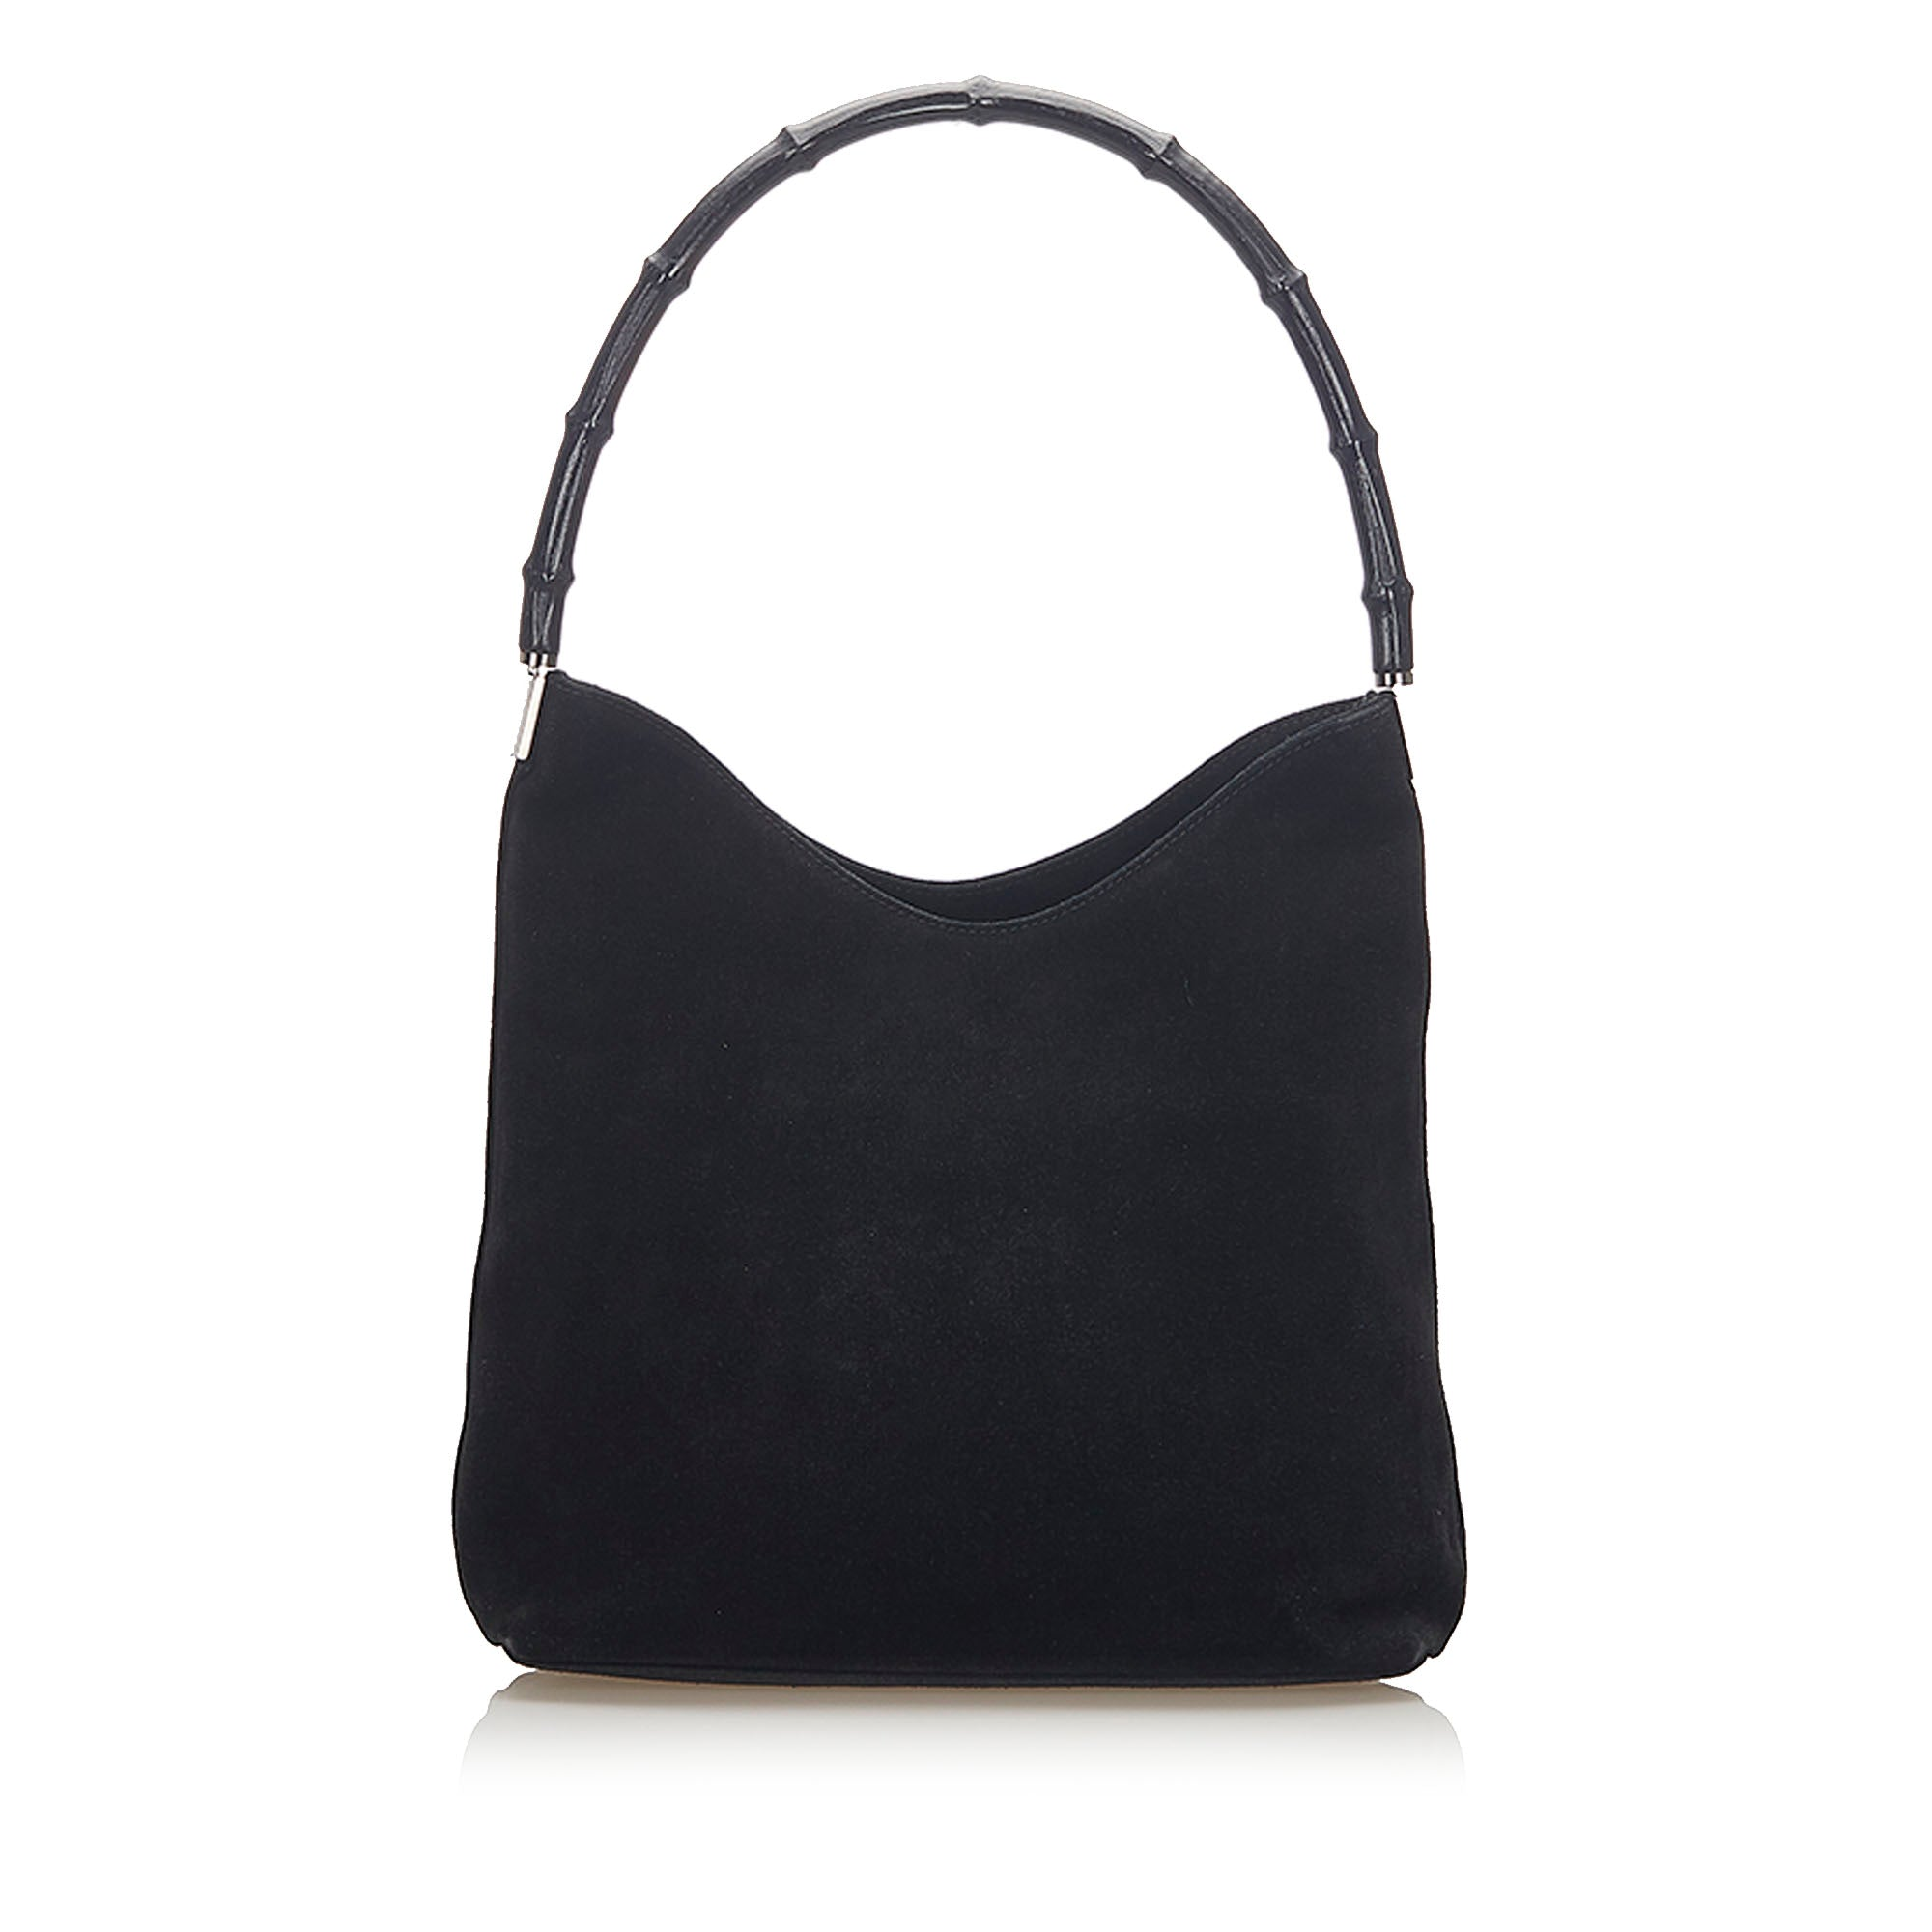 Gucci Black Bamboo Suede Shoulder Bag